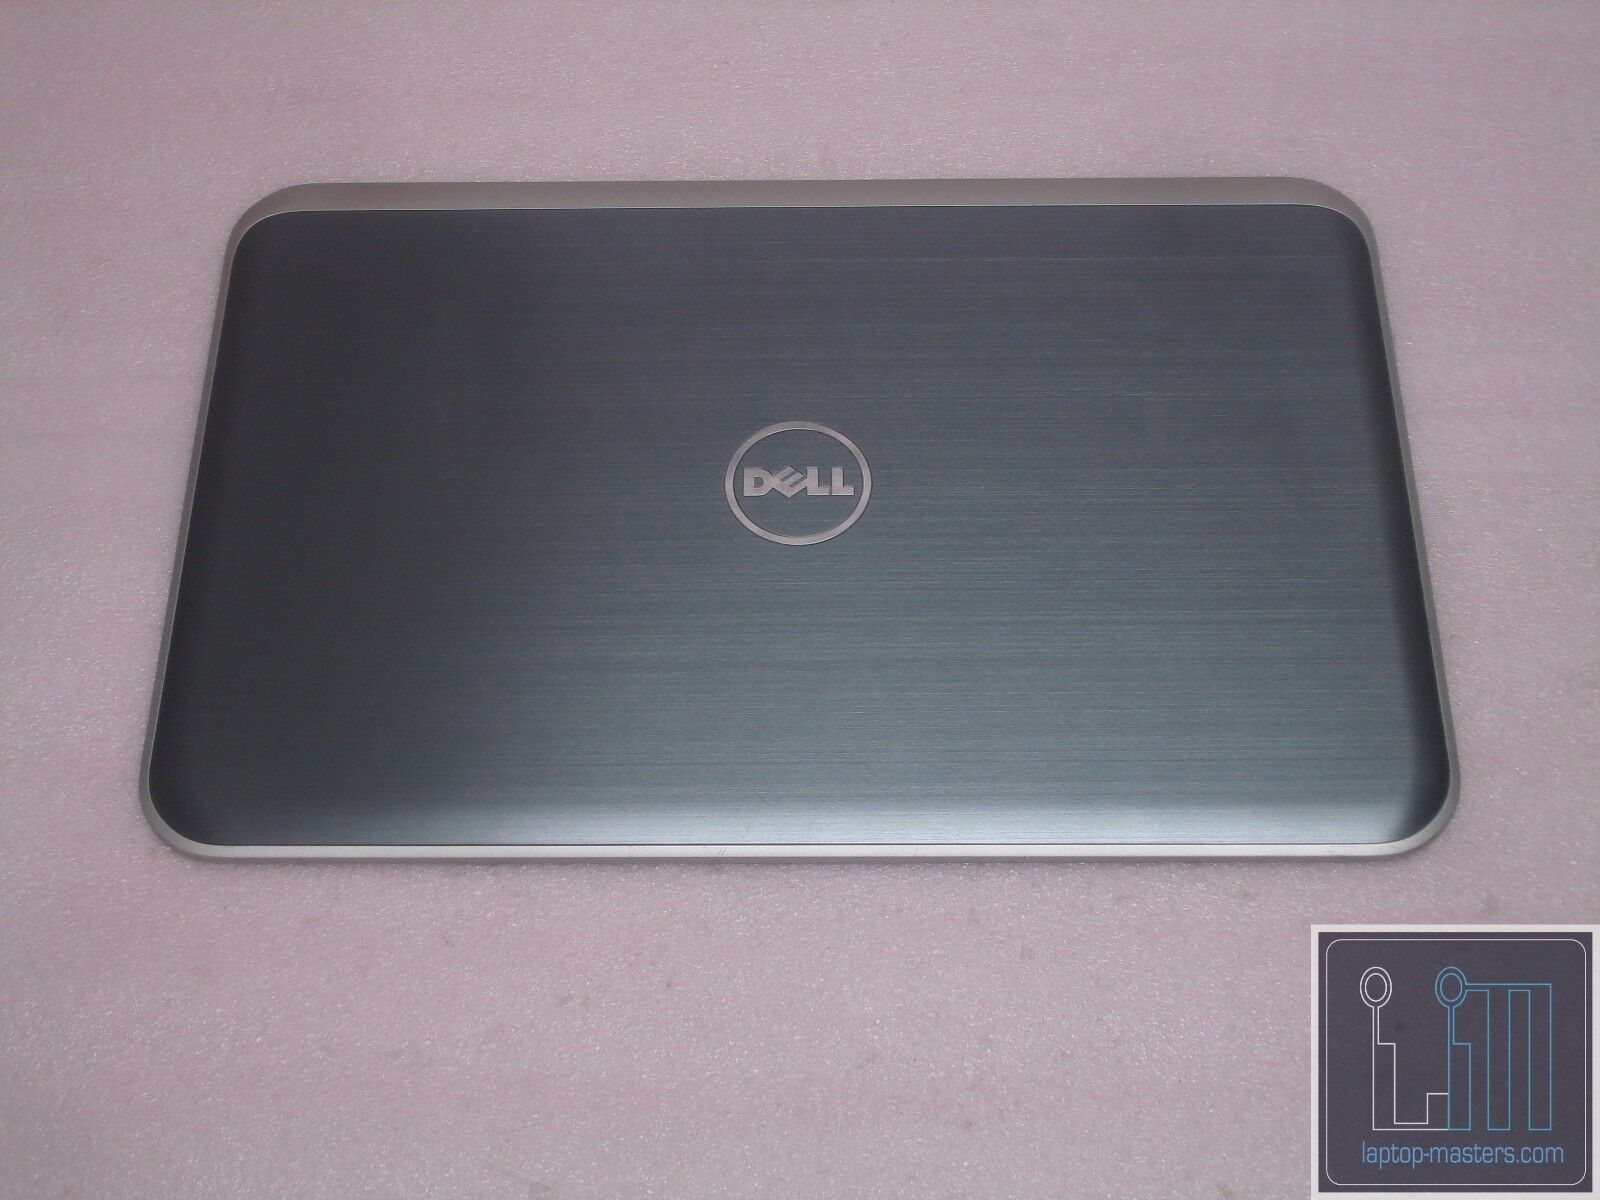 Dell Inspiron 15z 5523 LCD Display Back Cover Rear Lid 60.4vq22.002 Genuine